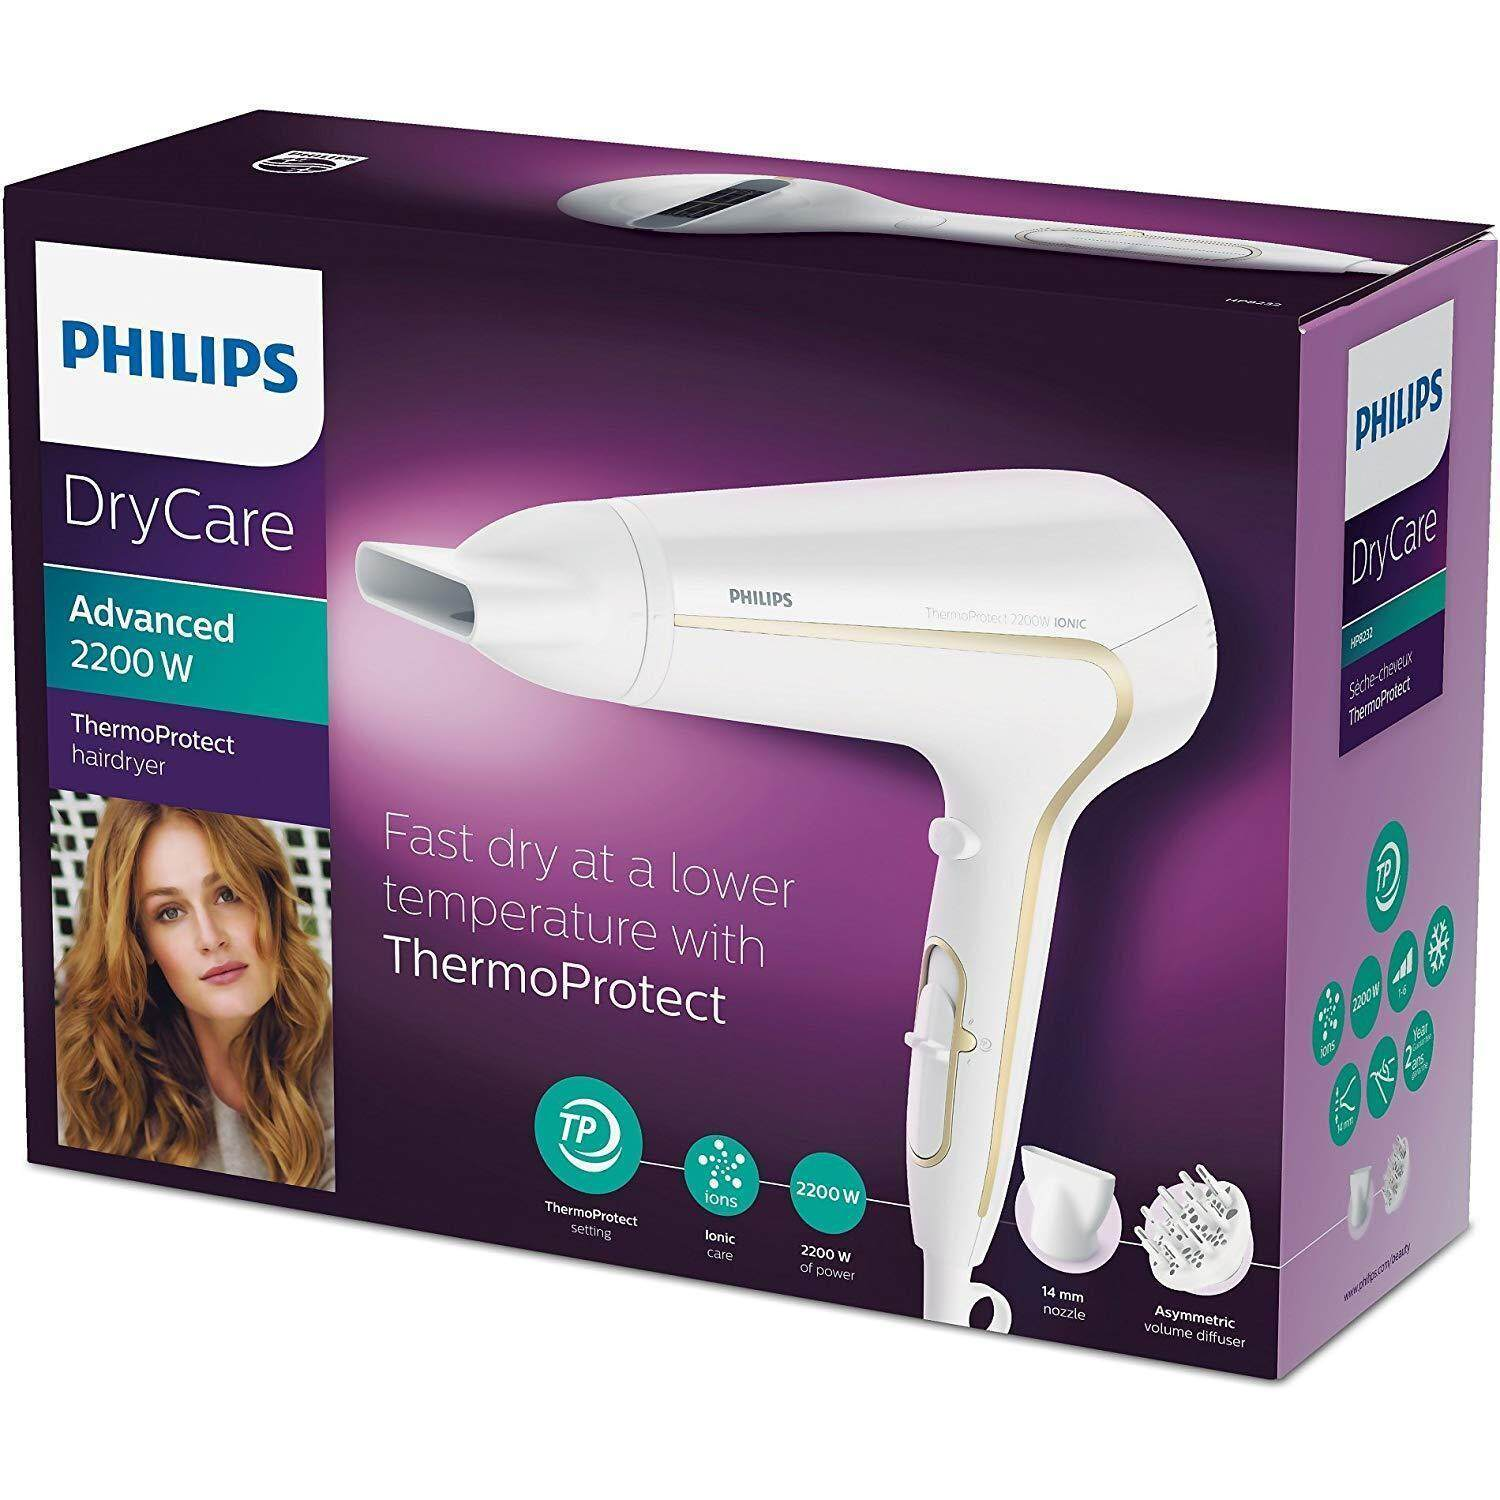 Promotions Catalogs Philips Bhd006 Essentialcare Hairdryer Hair Dryer Hp8108 Thermoprotect Hp8232 Drycare Advanced 2200 W 0